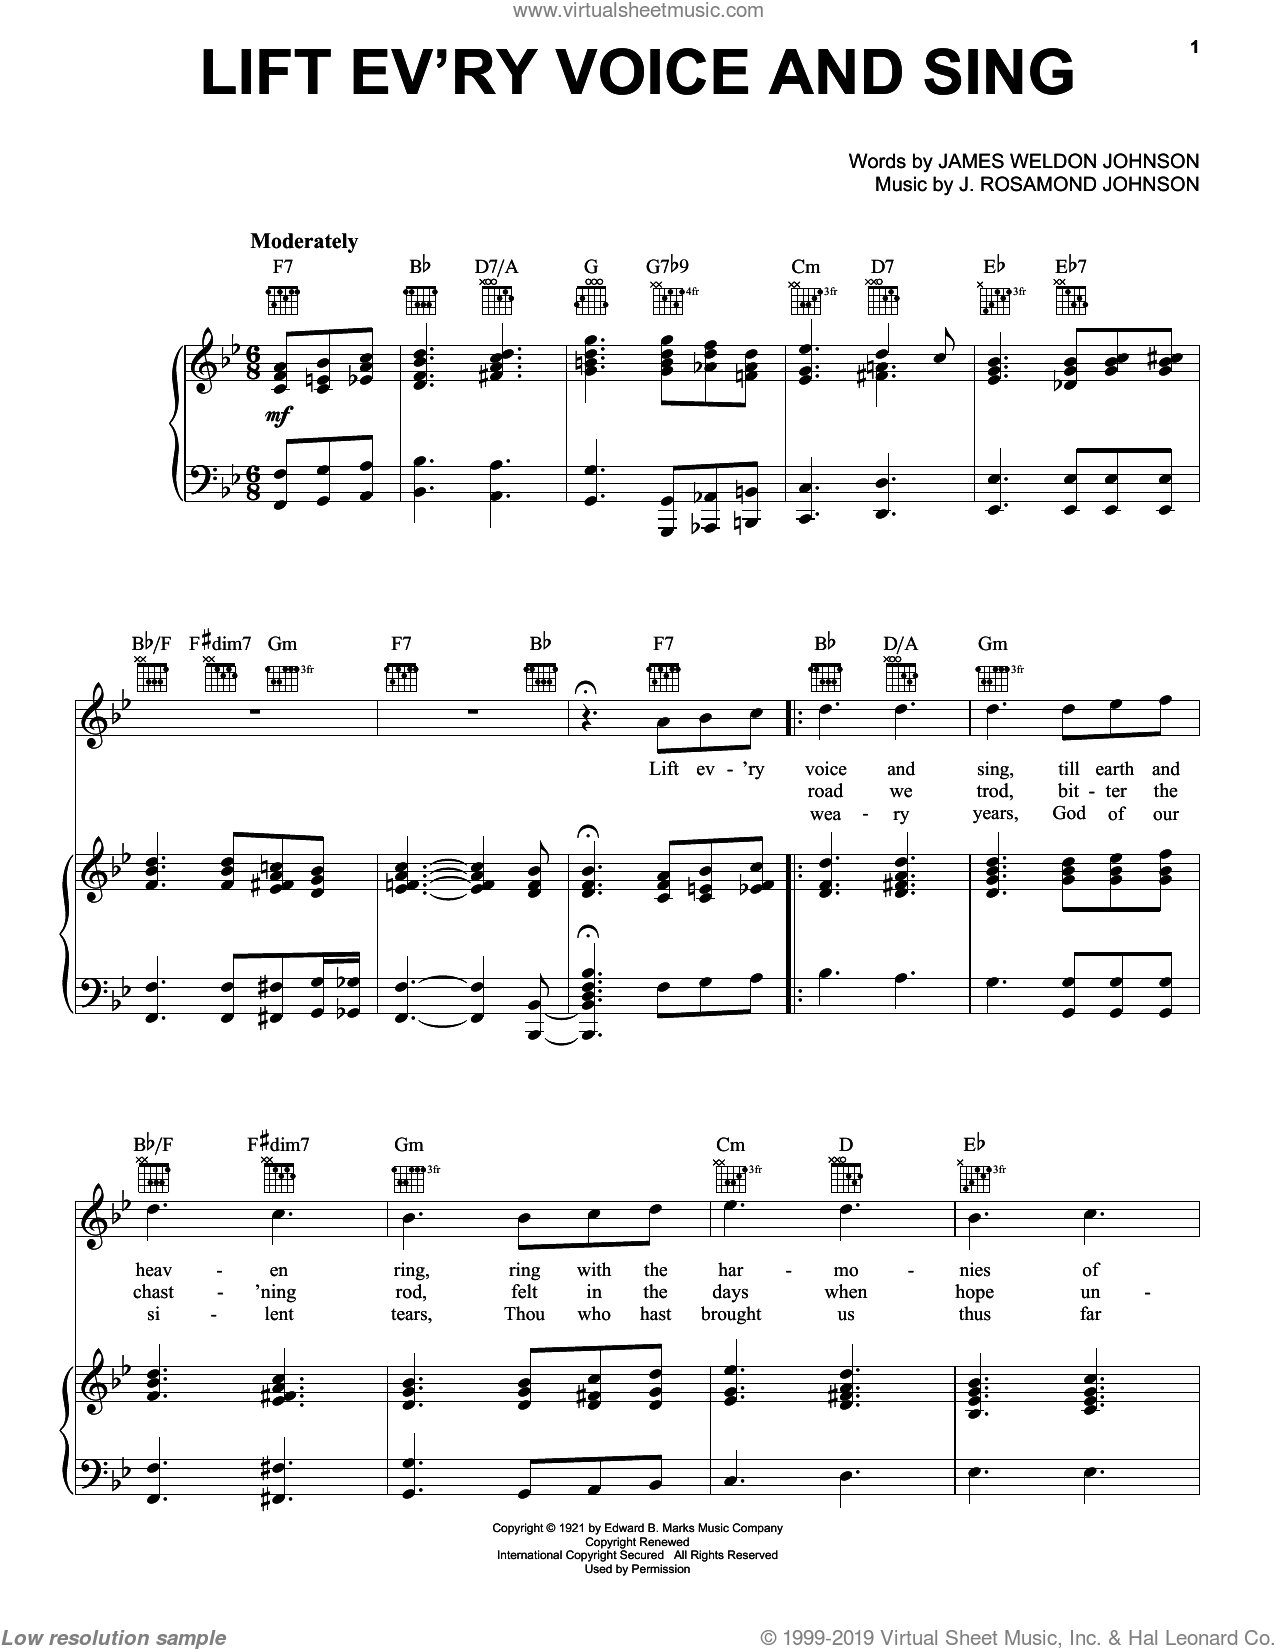 Lift Ev'ry Voice And Sing sheet music for voice, piano or guitar by J. Rosamond Johnson and James Weldon Johnson, intermediate skill level